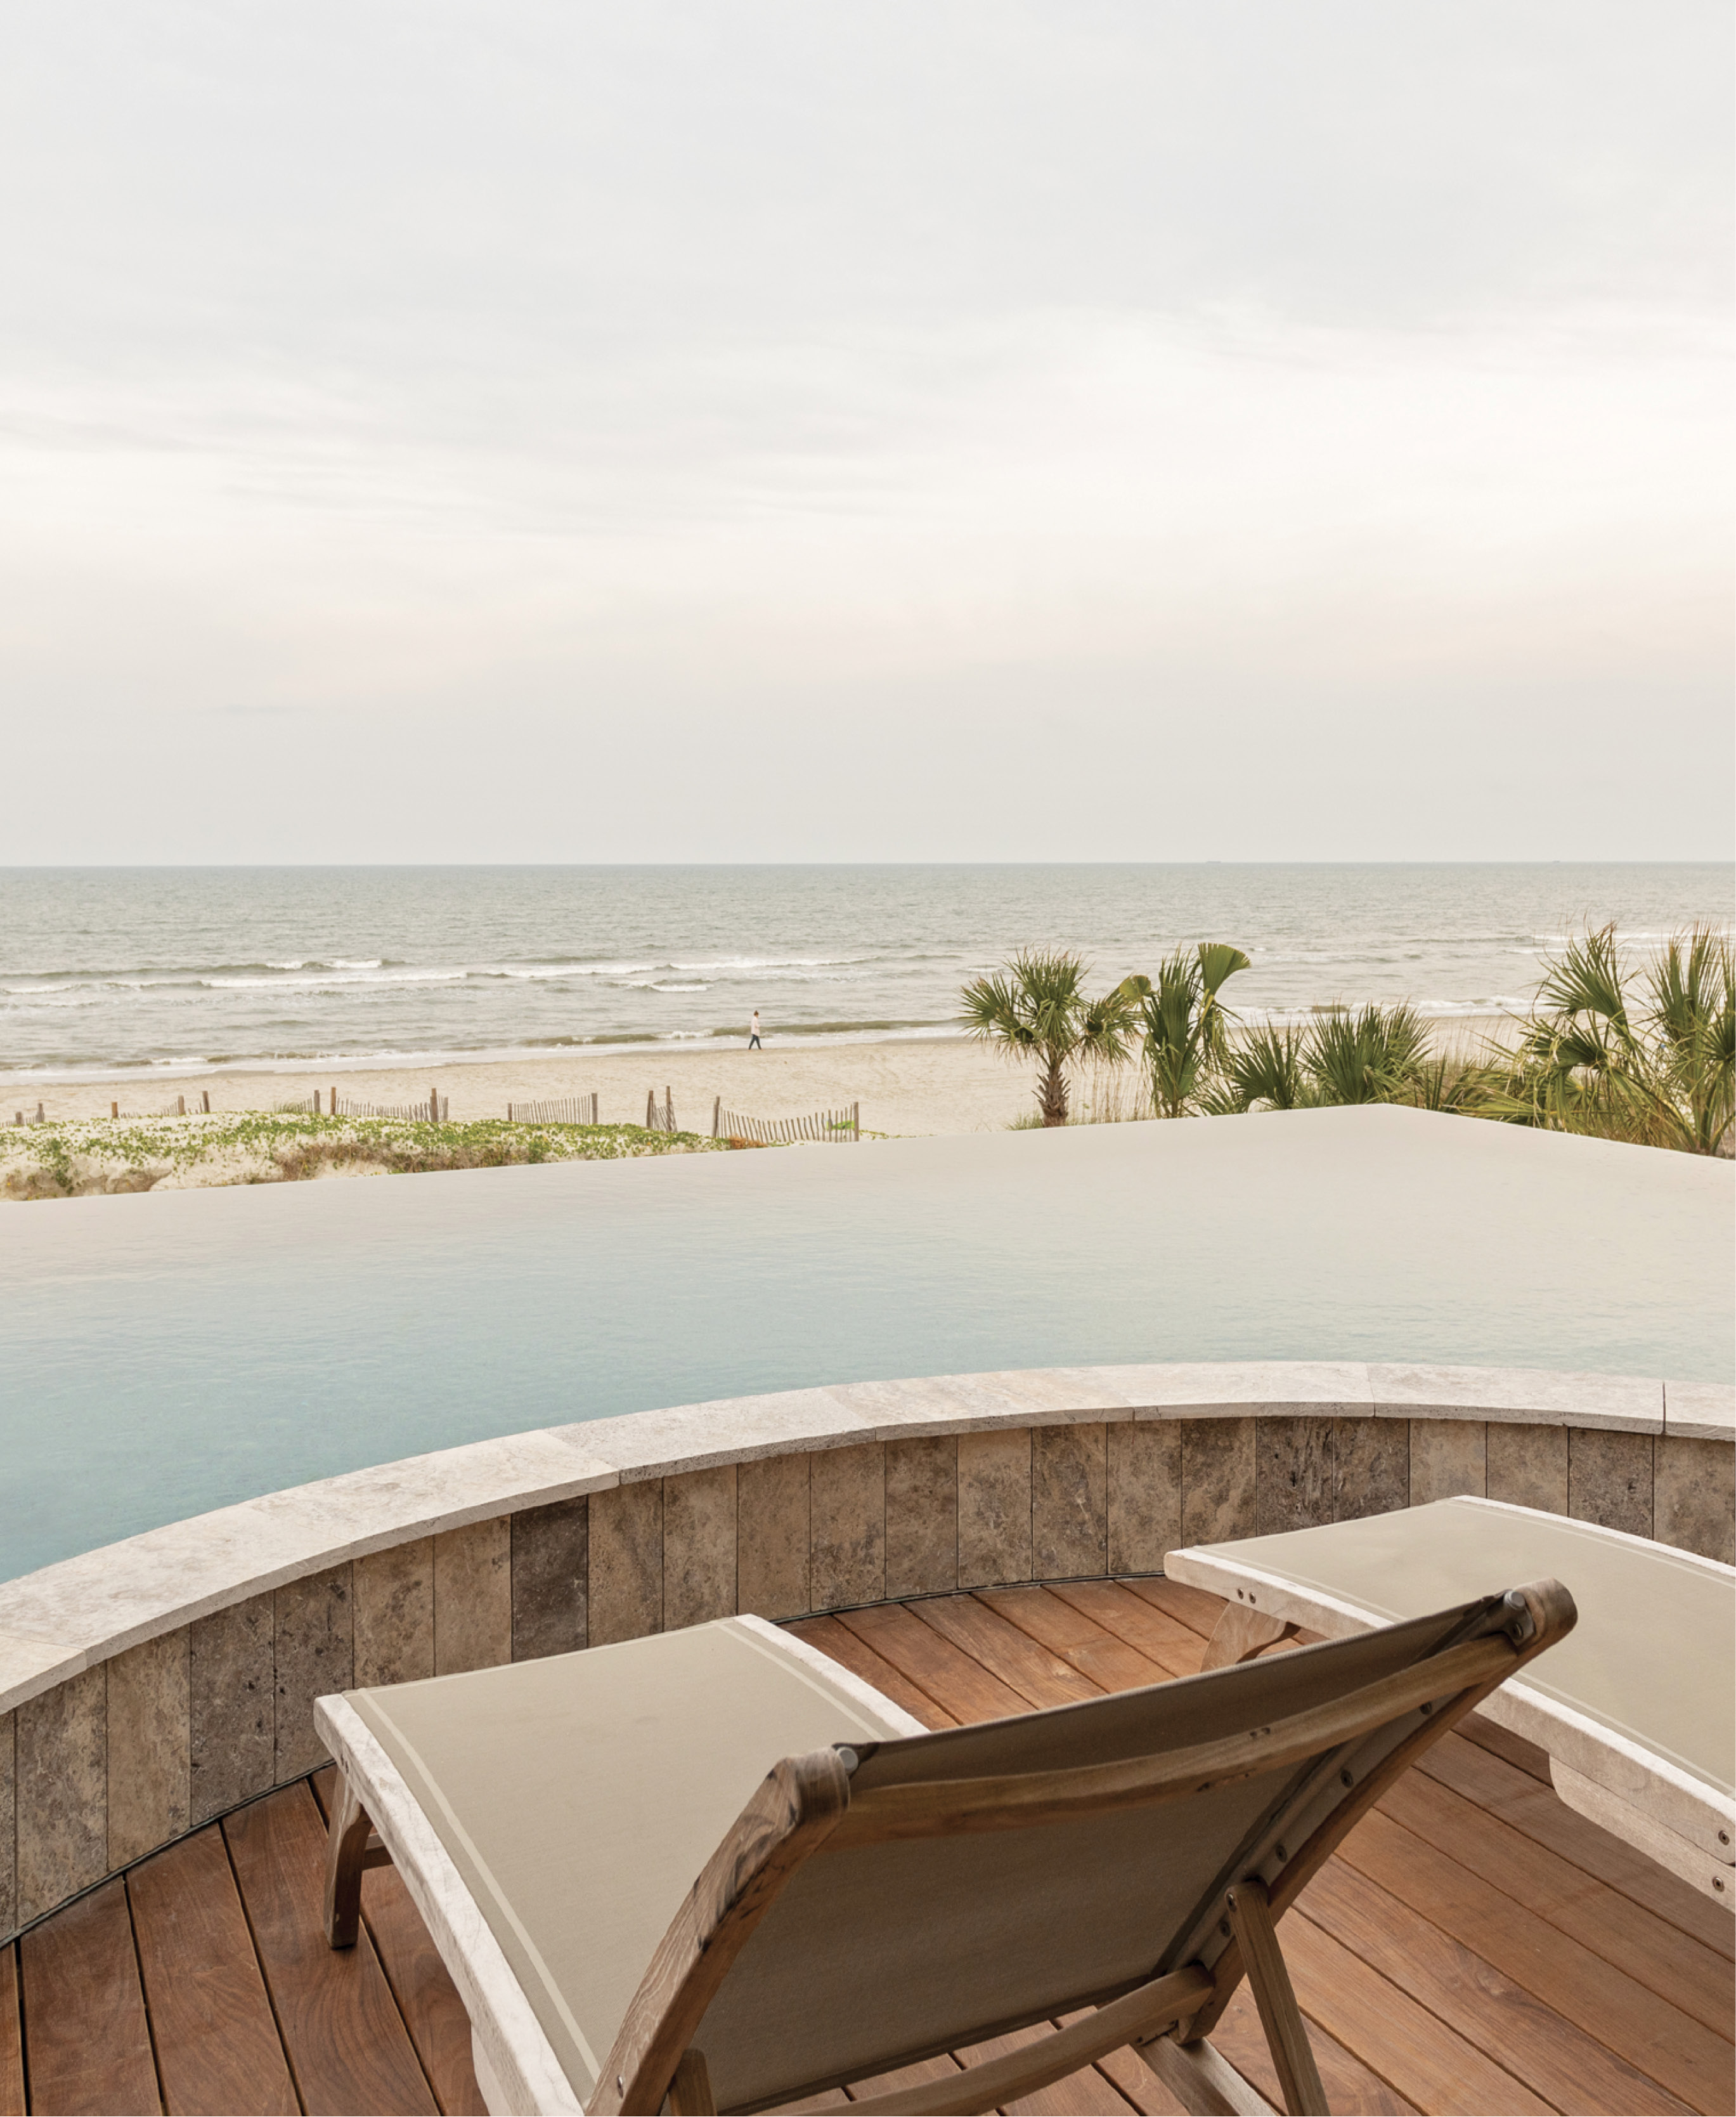 """Dream Digs - Looking out from the infinity pool to the atlantic beyond, the Leonards can't help but pinch themselves. The couple, who met here nearly 30 years ago, have realized their dream—to return to the Lowcountry and live on the beach. Check out the family's grand but decidedly """"unfussy"""" Isle of Palms oceanfront home."""